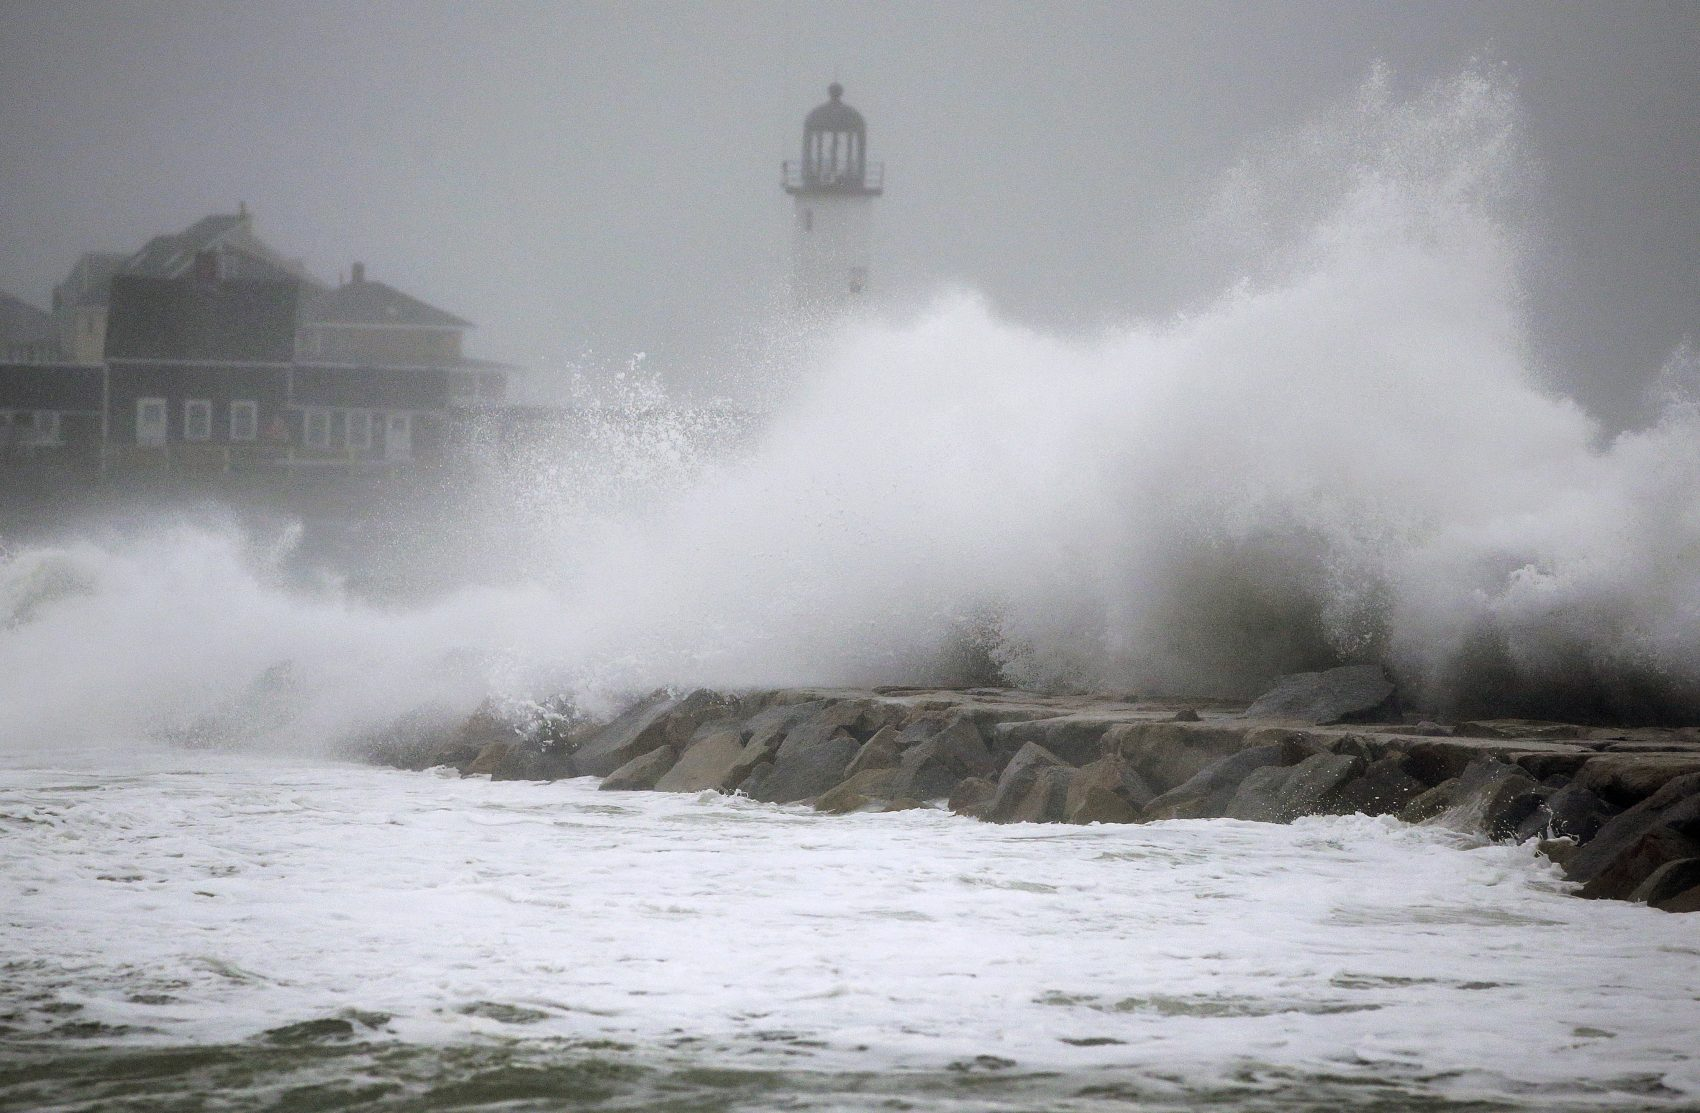 Northeast bracing for another nor'easter days after deadly storm